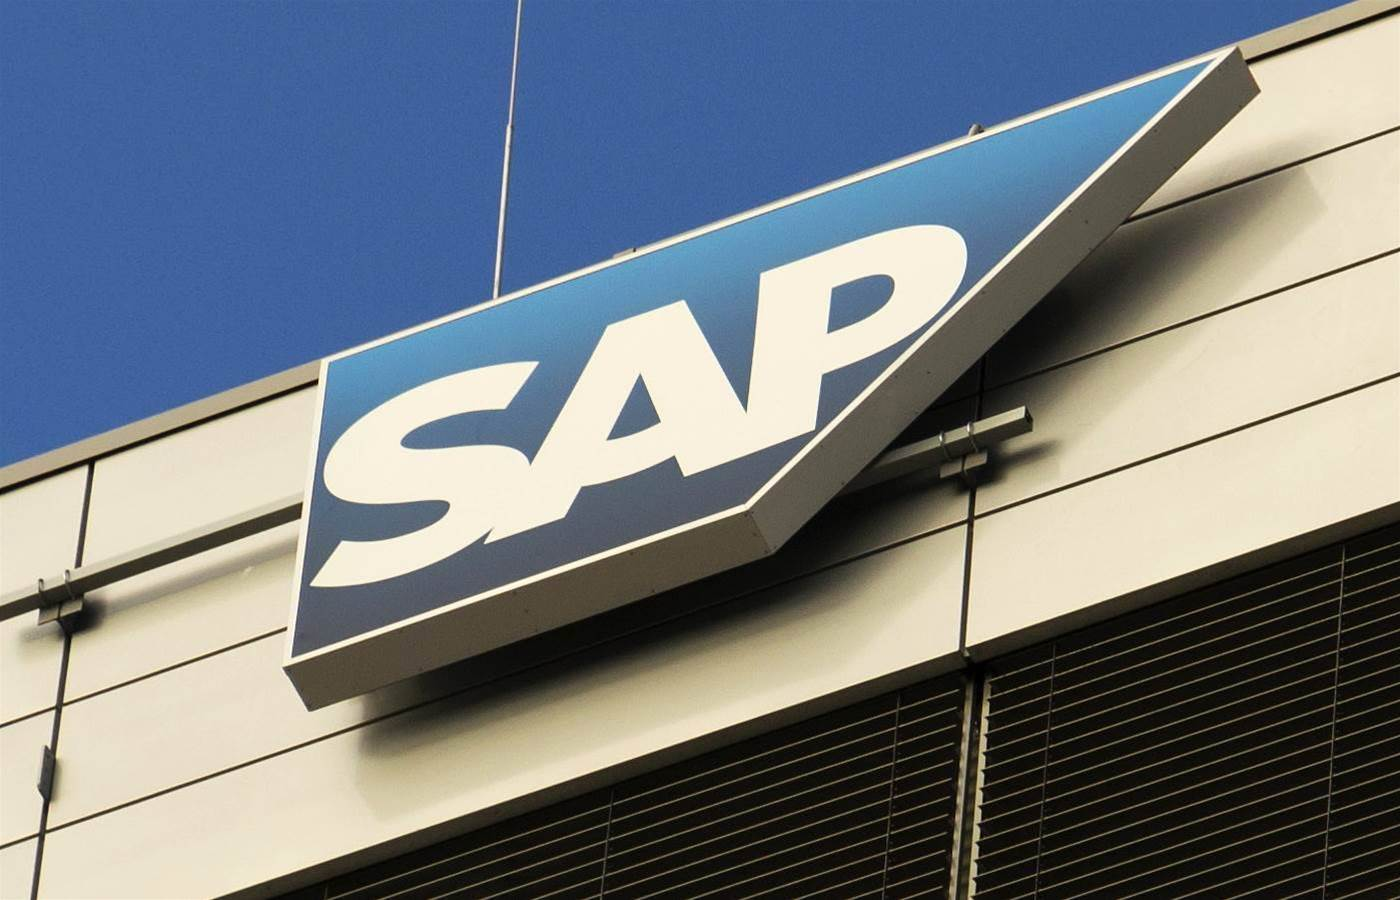 SAP swoops on Qualtrics before float